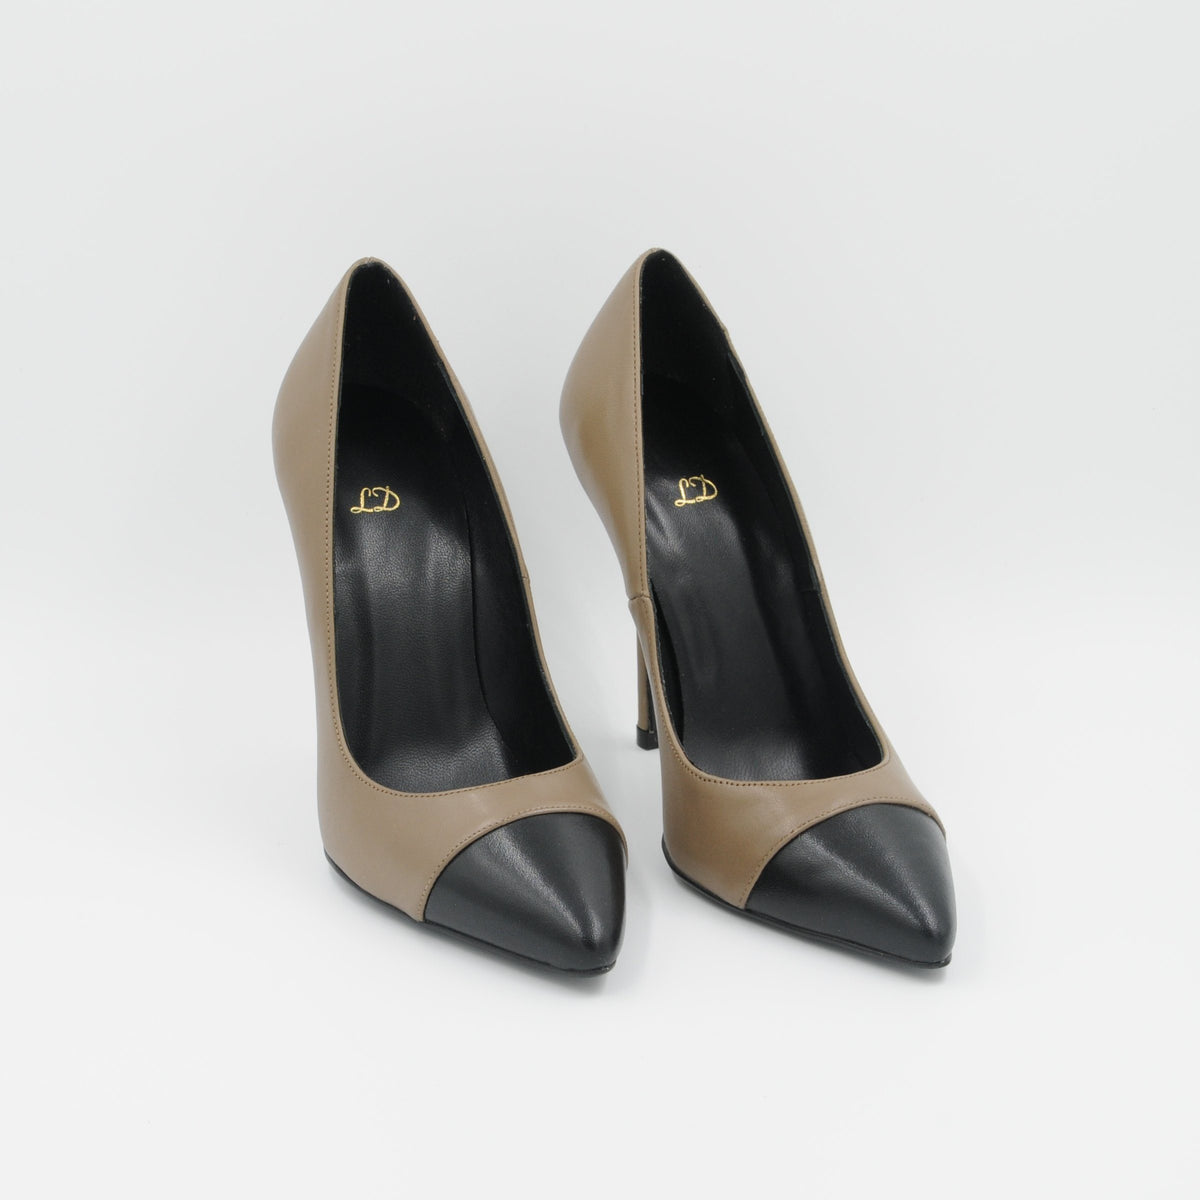 Lola Domecq Martina In Beige Hand made pointy leather heels